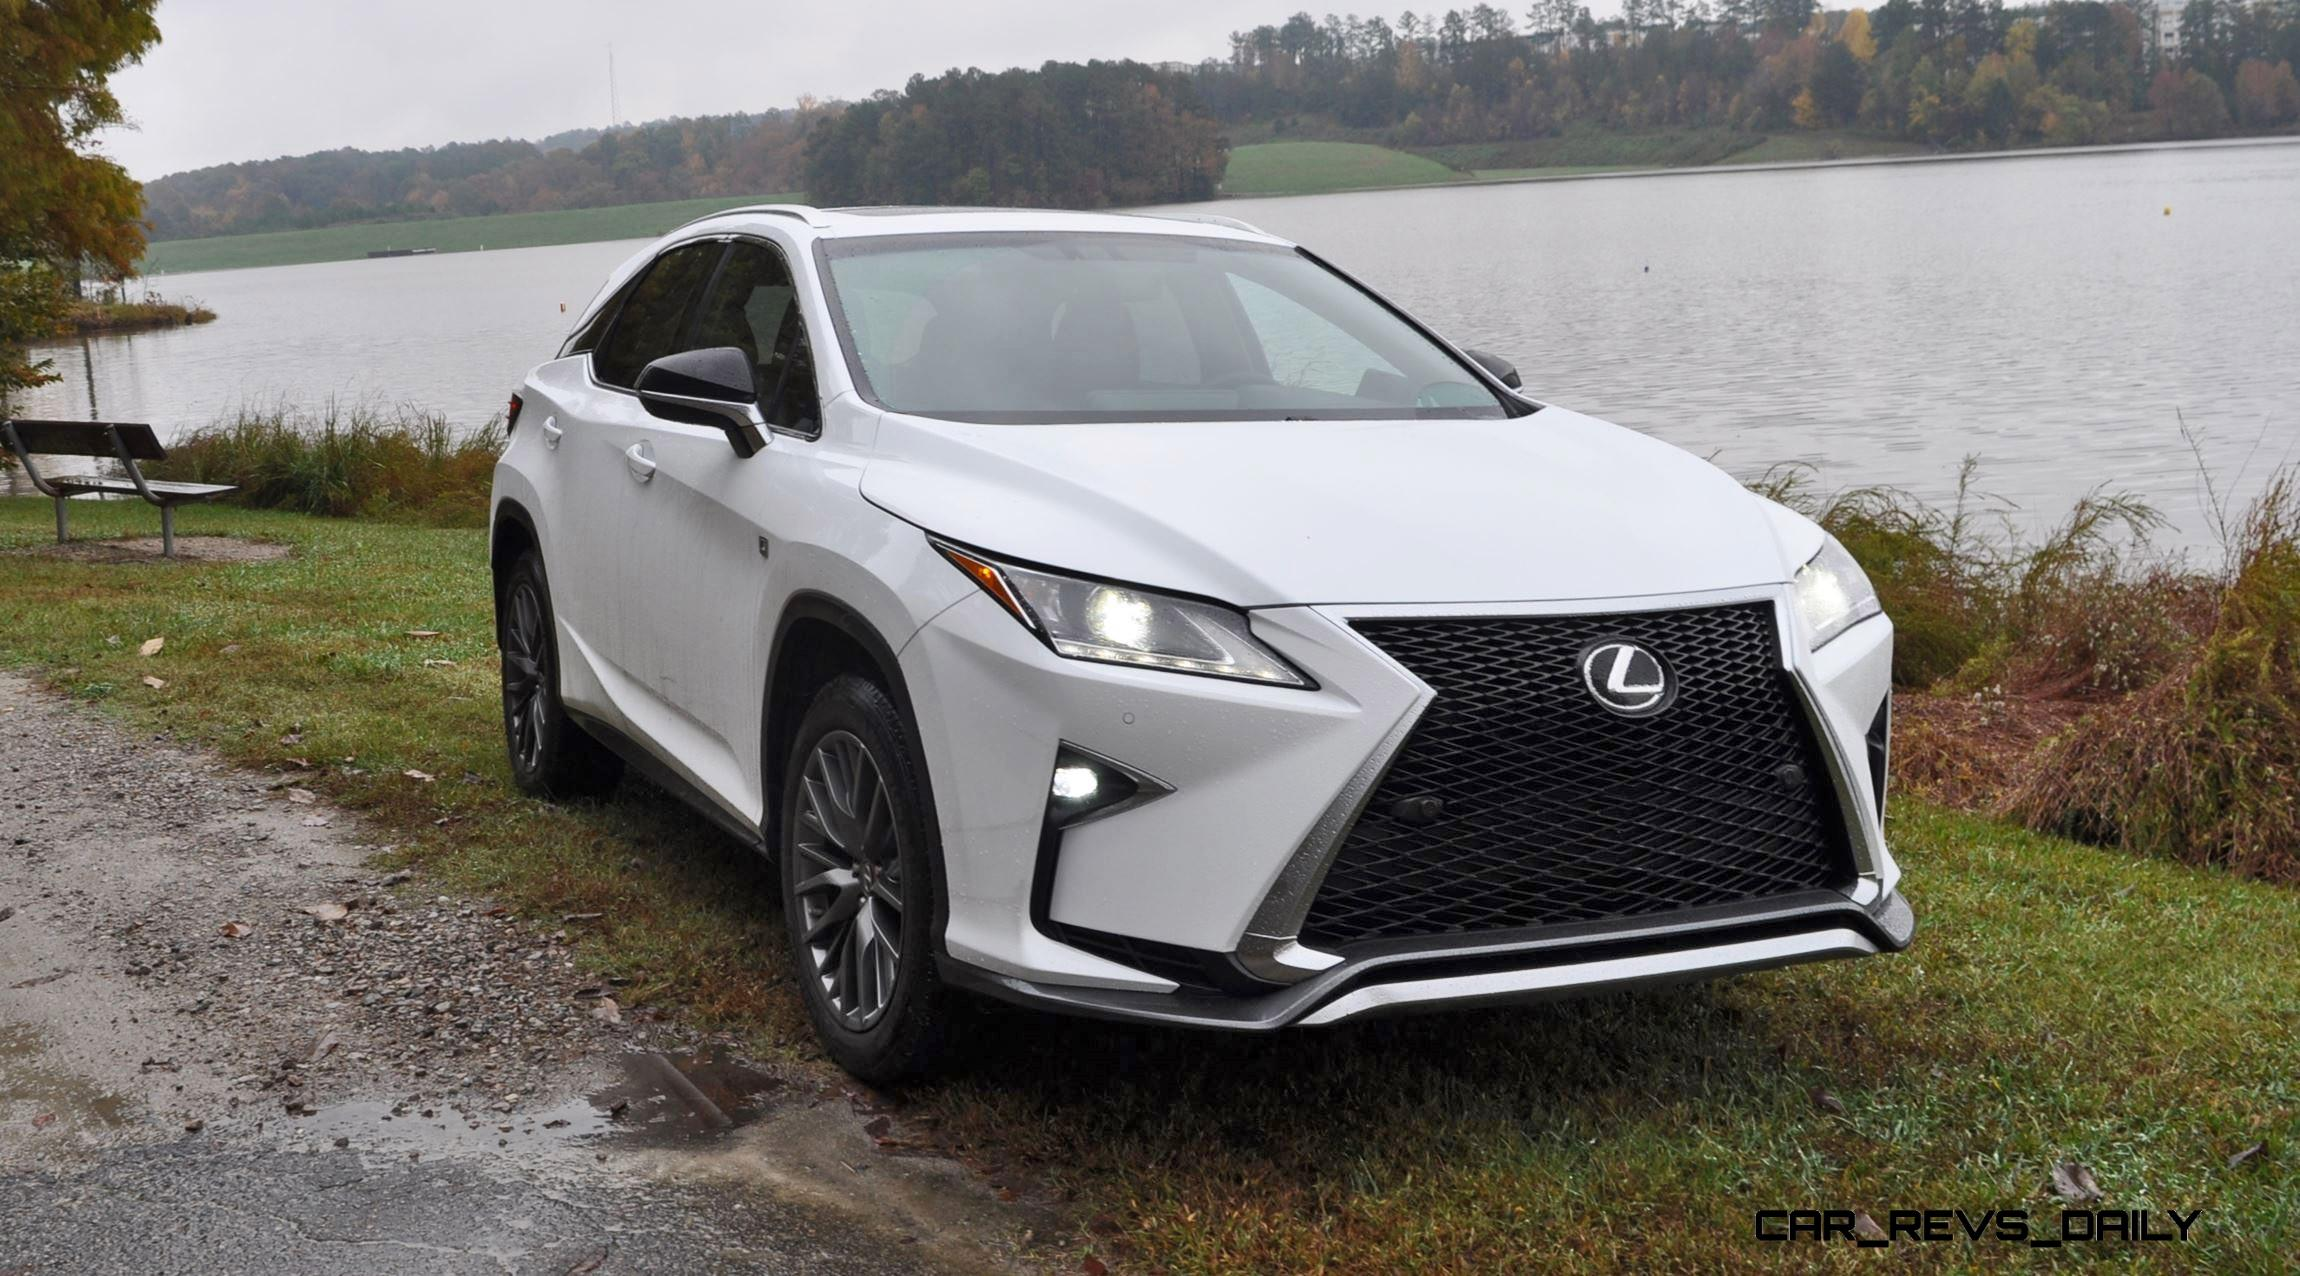 2016 Lexus RX Reviews Roundup 150 All New RX350 F Sport s